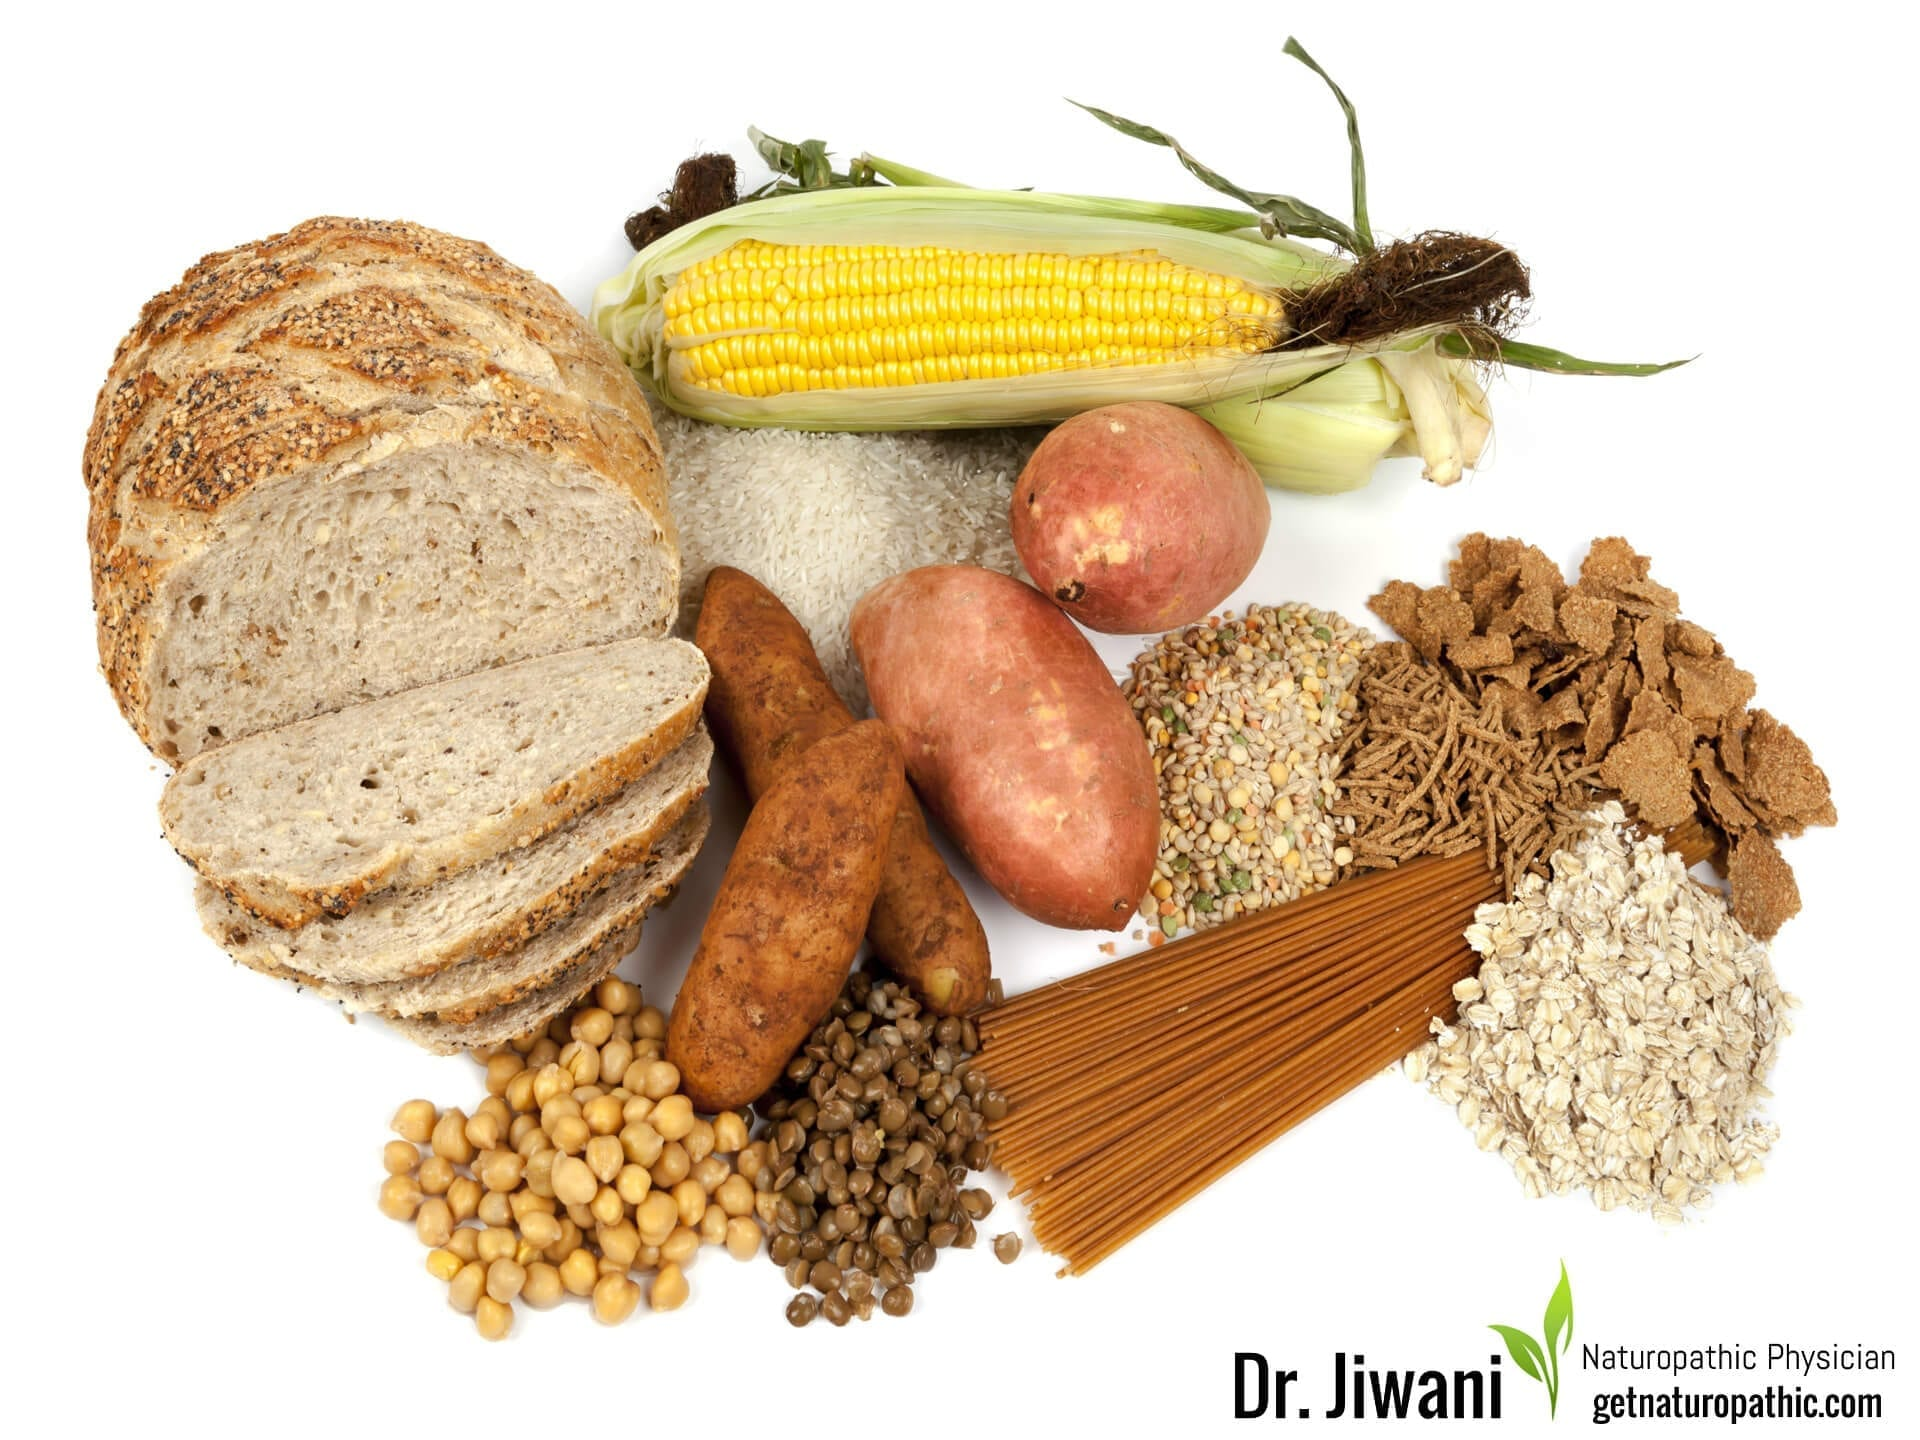 Dr. Jiwani Ketogenic Diet for Newbies: The Why, When & How of this Low Carb Fat Burning Regime 70-25-5* | Dr. Jiwani's Naturopathic Nuggets Blog